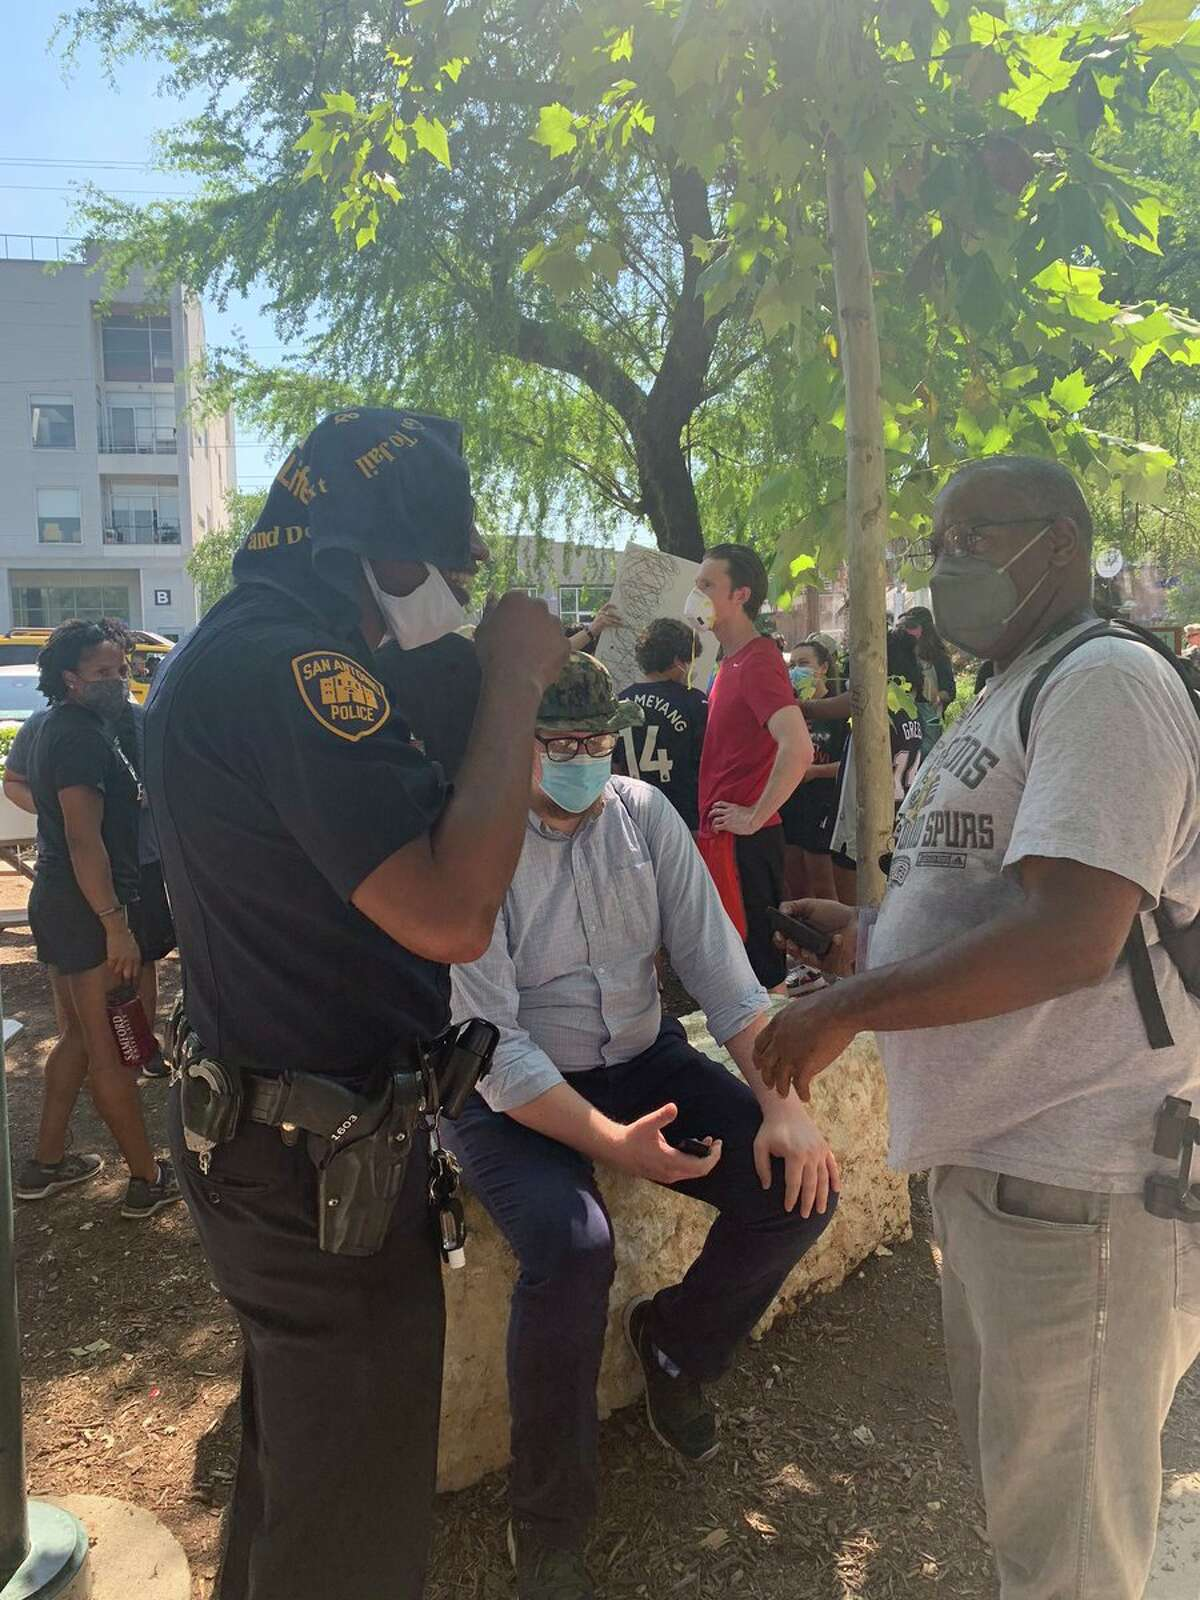 Officer Doug Greene, public information officer with the San Antonio Police Department, meets with protesters Monday, June 8, 2020, at Blue Star Arts Complex.